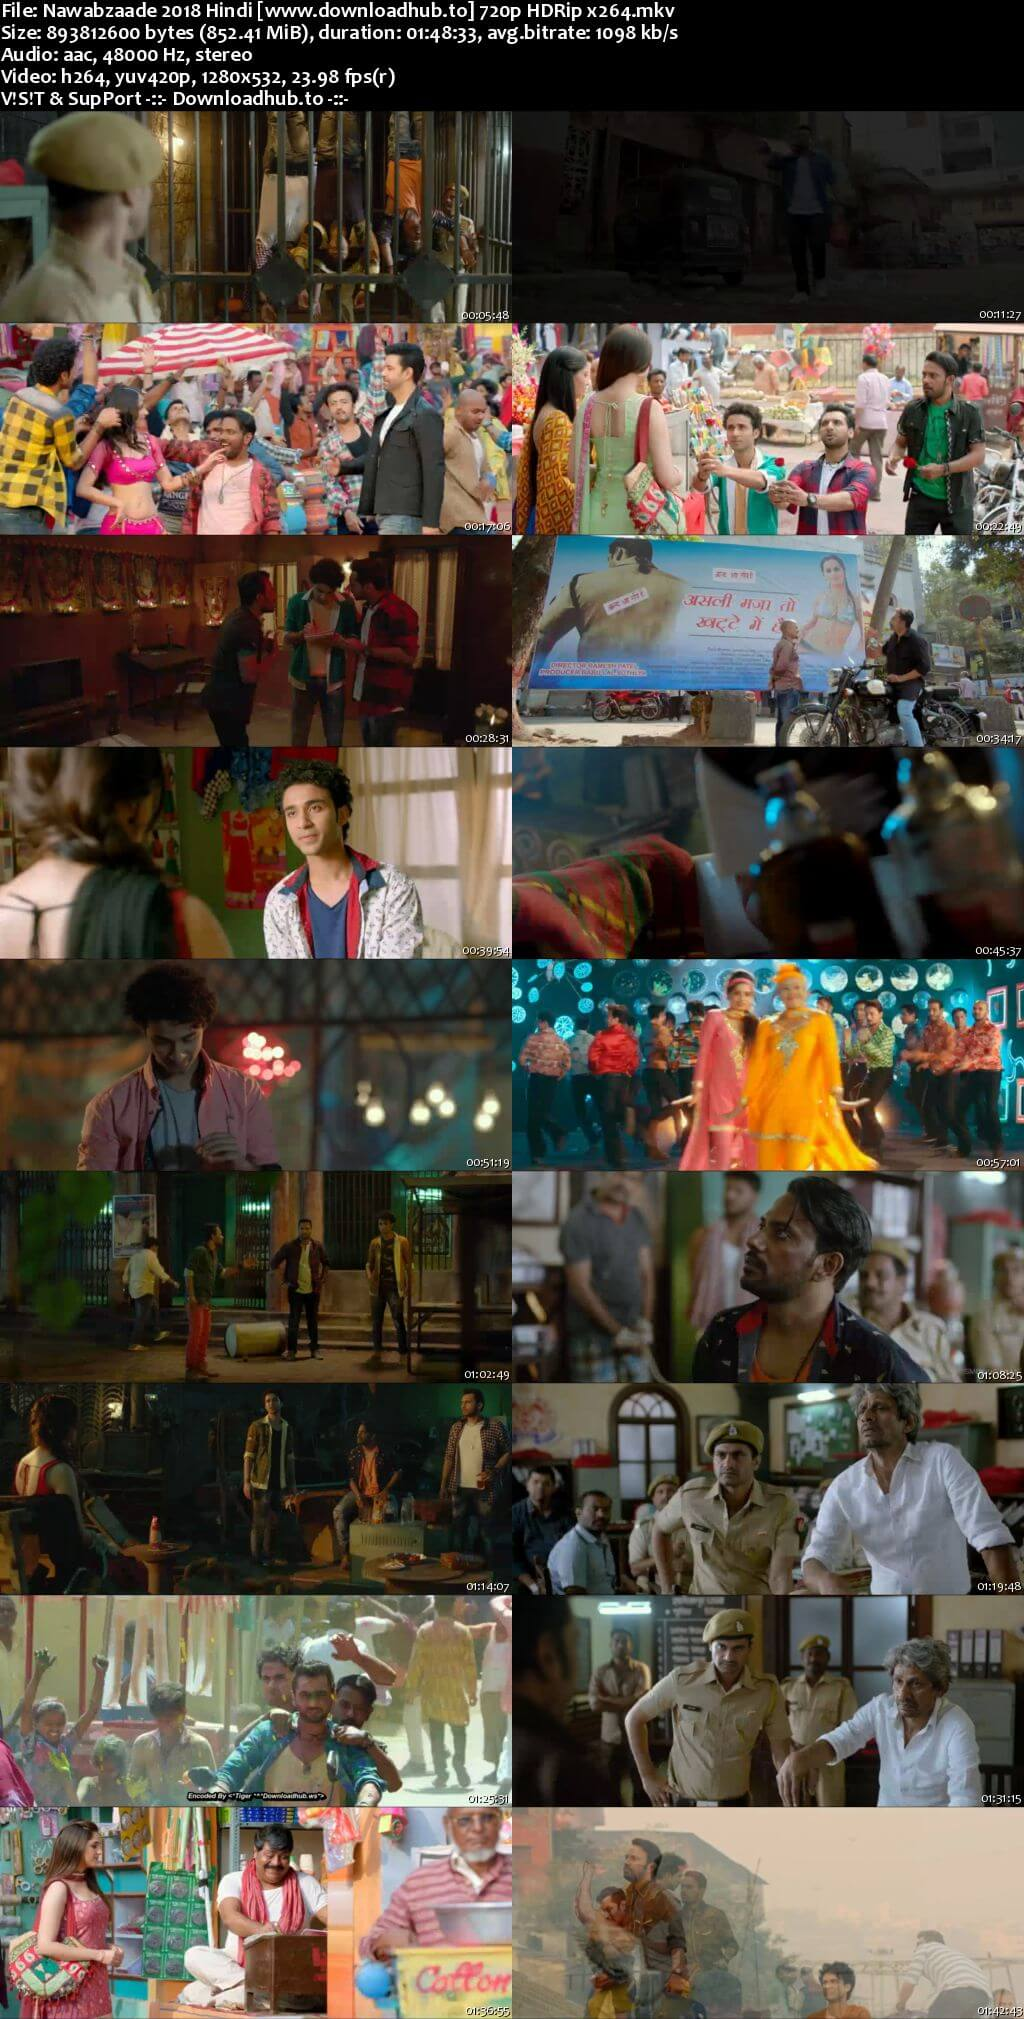 Nawabzaade 2018 Hindi 720p HDRip